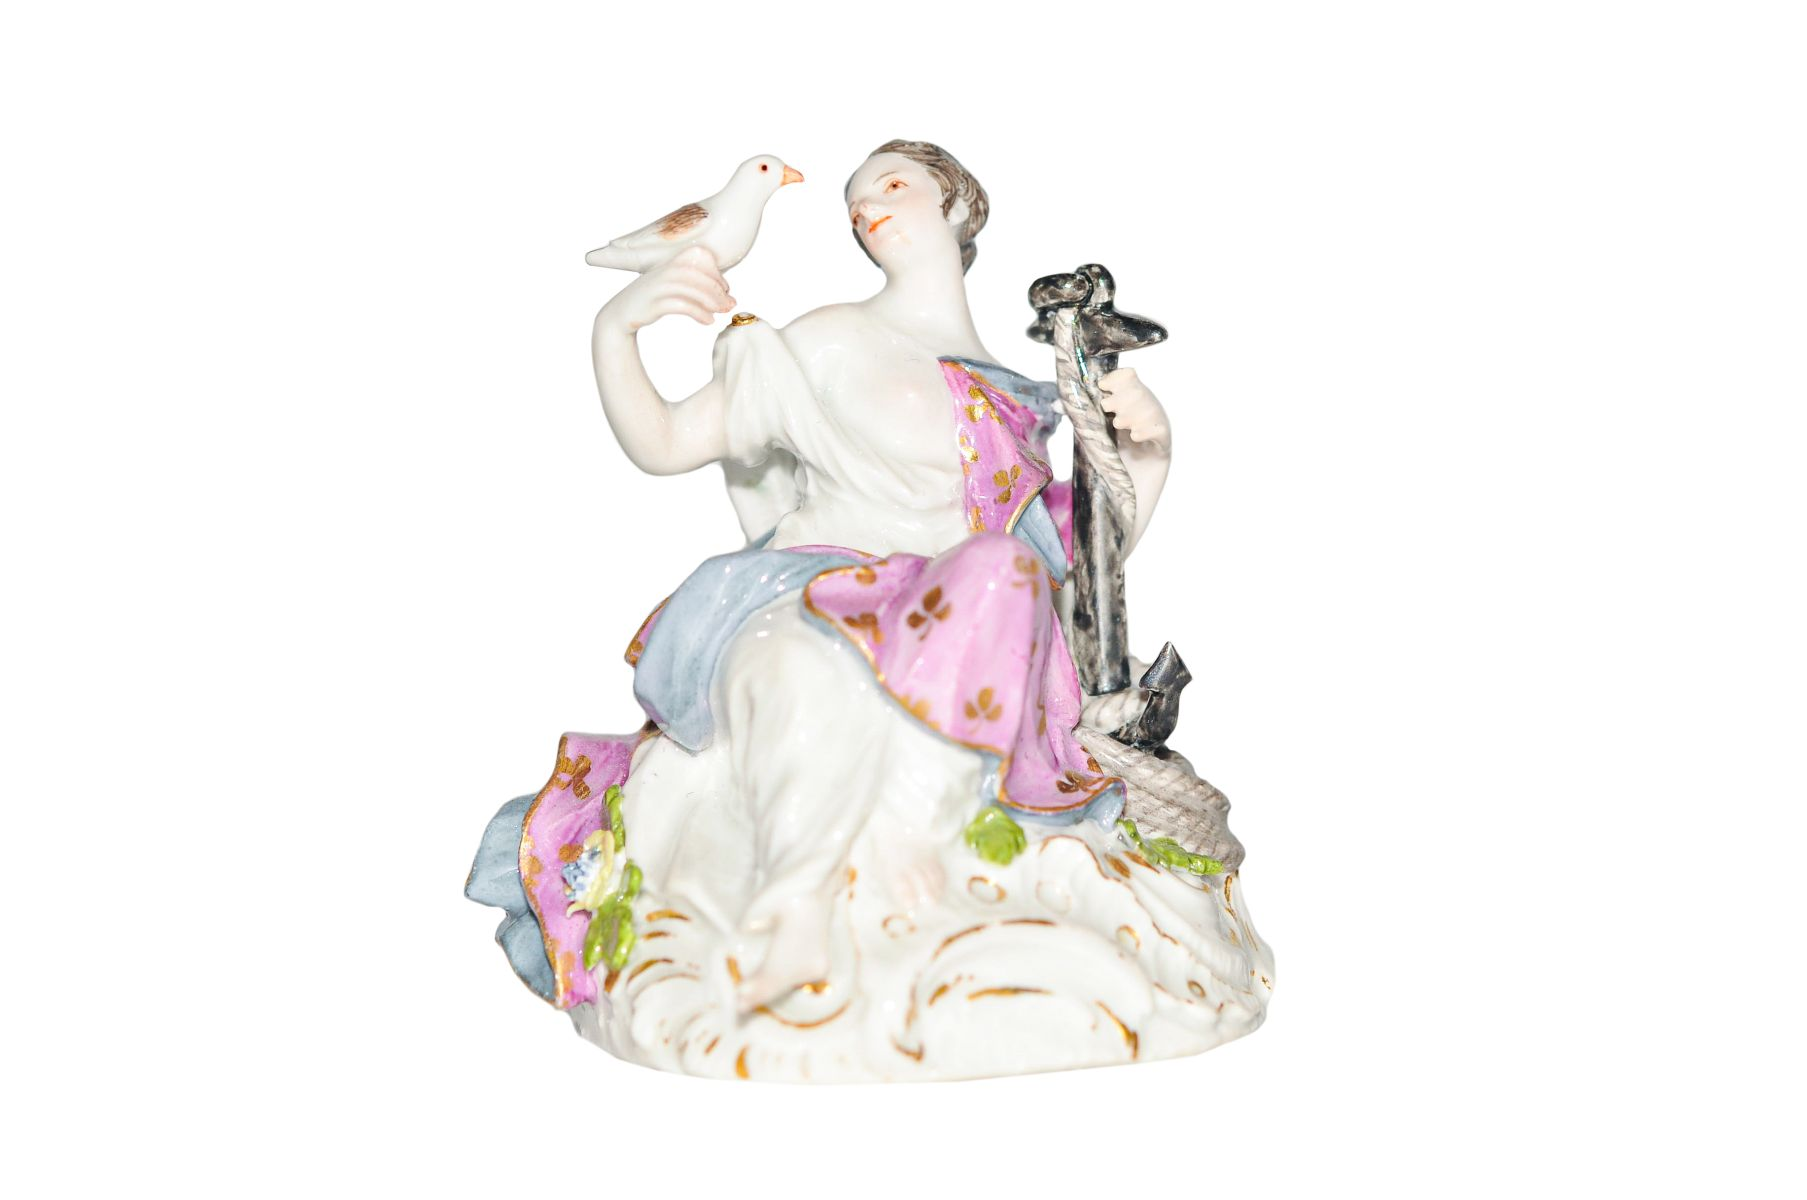 #149 Figure lady with anchor + dove | Figur Dame mit Anker + Taube Image